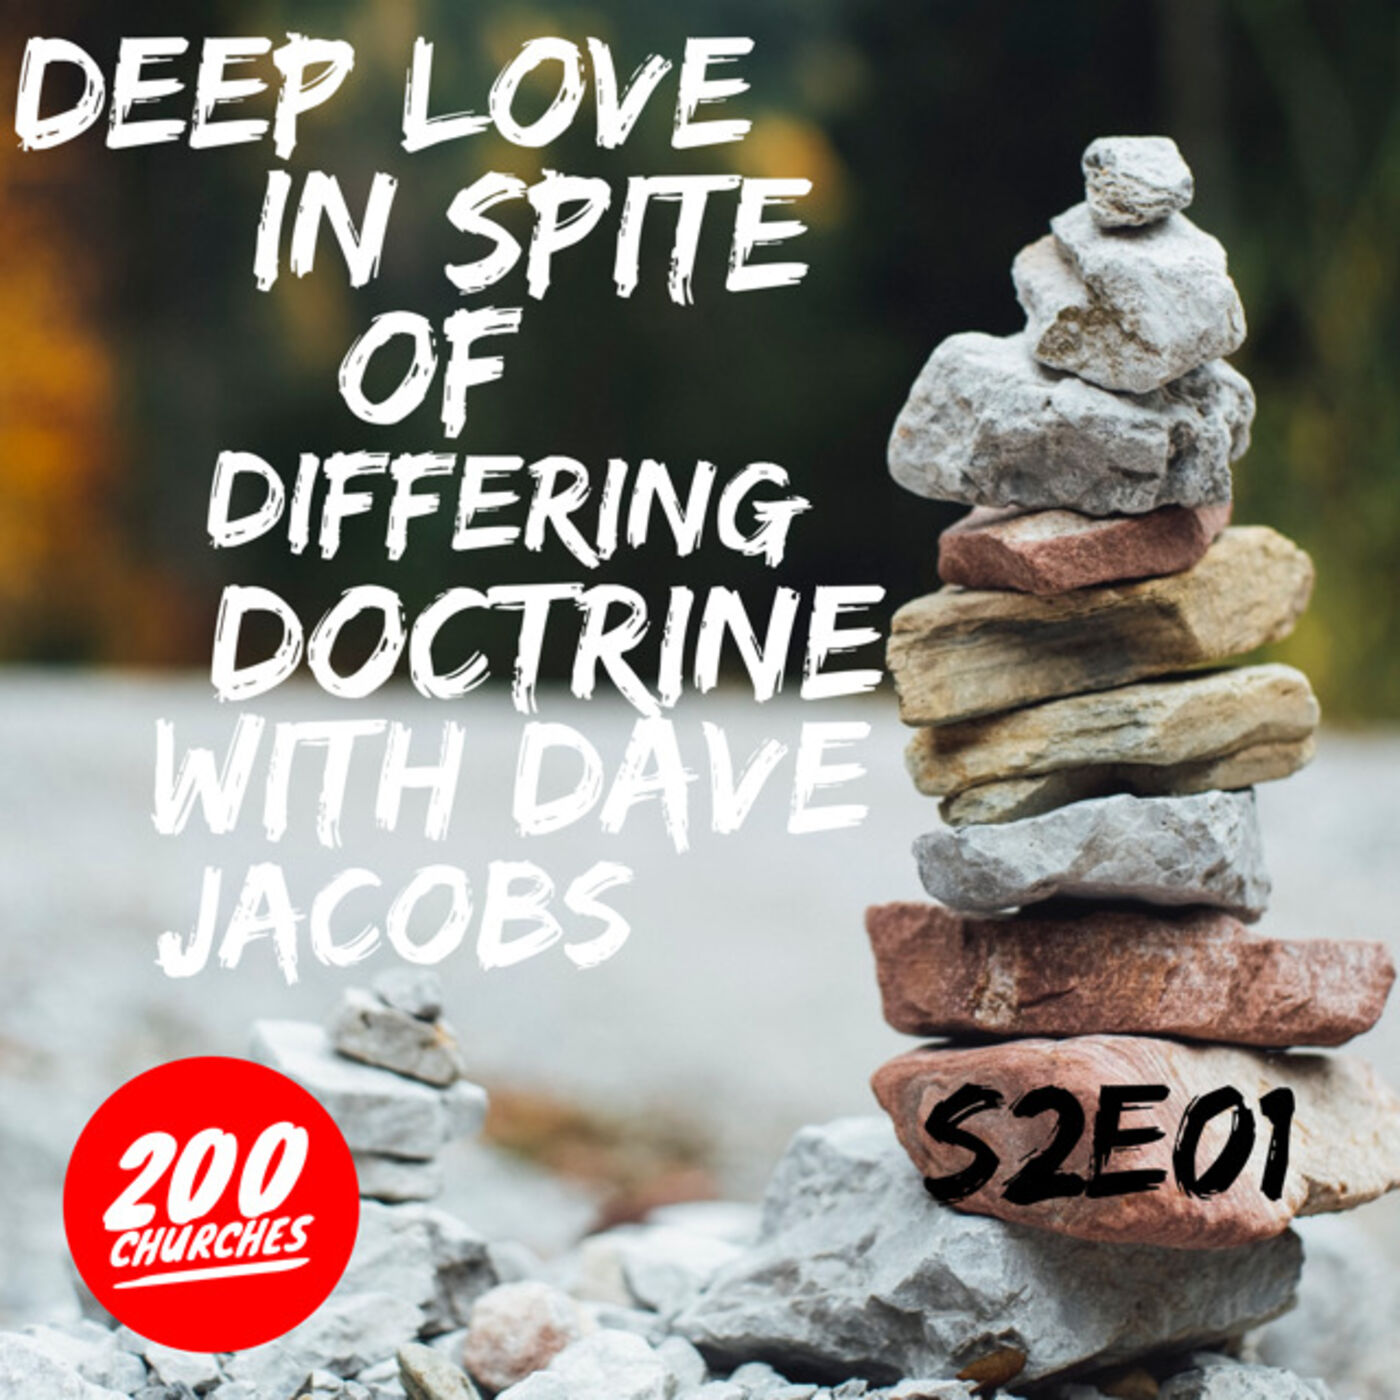 S2E01 - Deep Love In Spite Of Differing Doctrine with Dave Jacobs